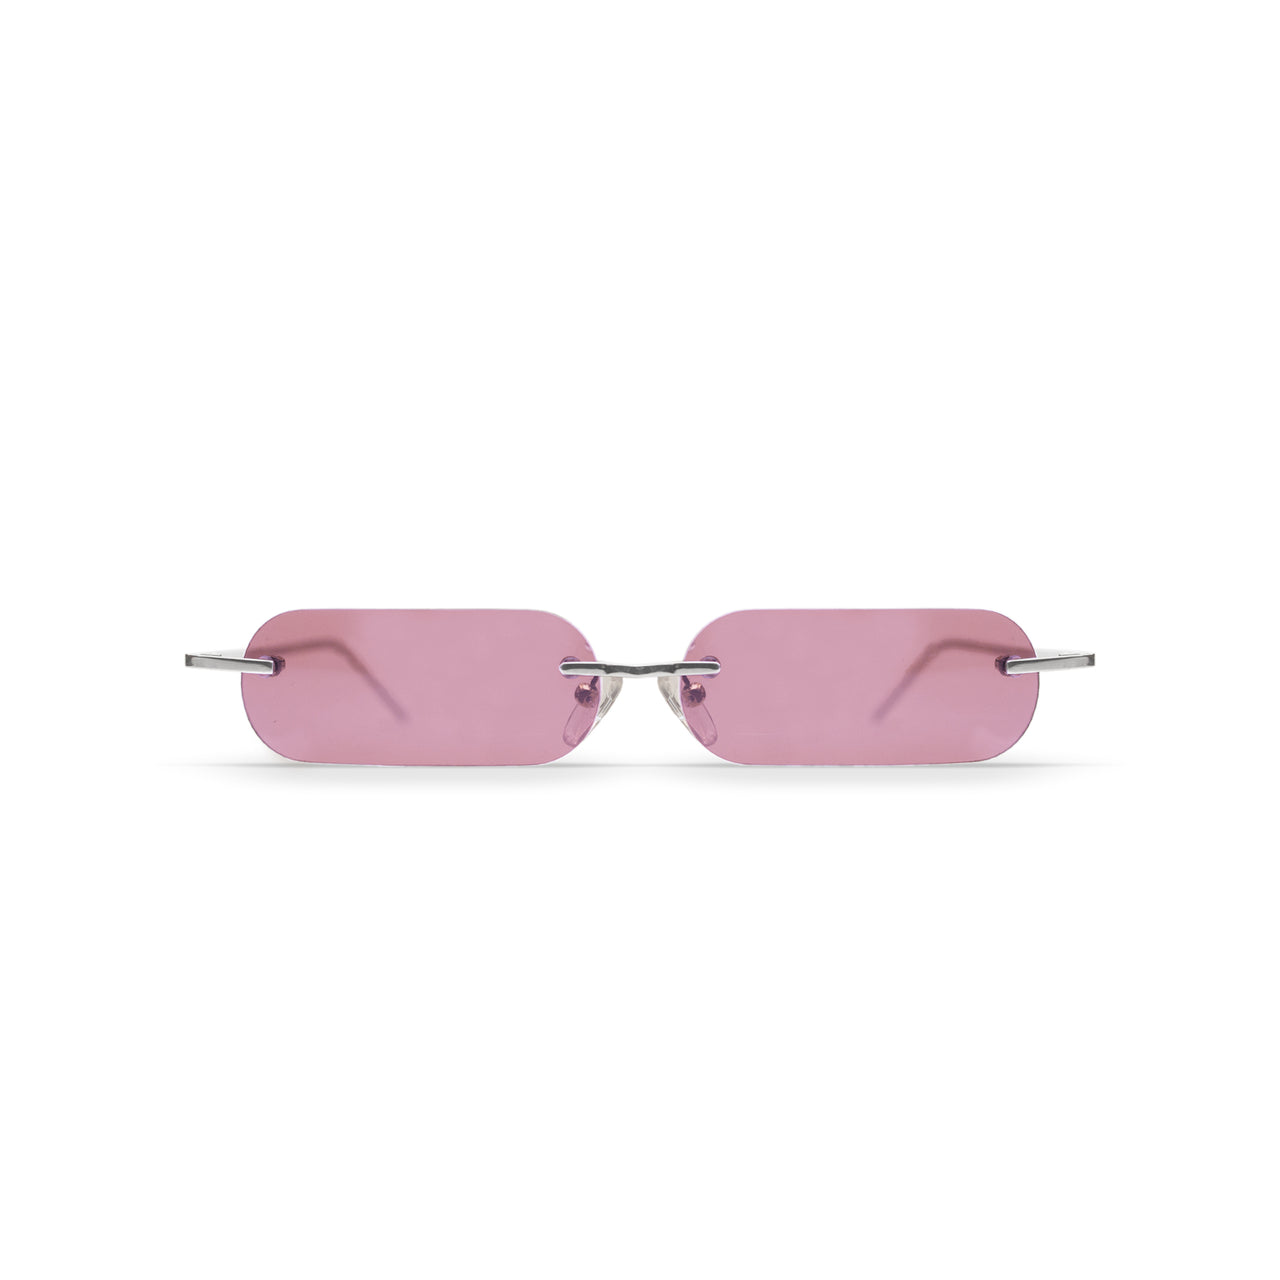 Metal. Polished Silver. Blush Lens. - BLYSZAK eyewear eyewear - eyewear, optical, sunglasses